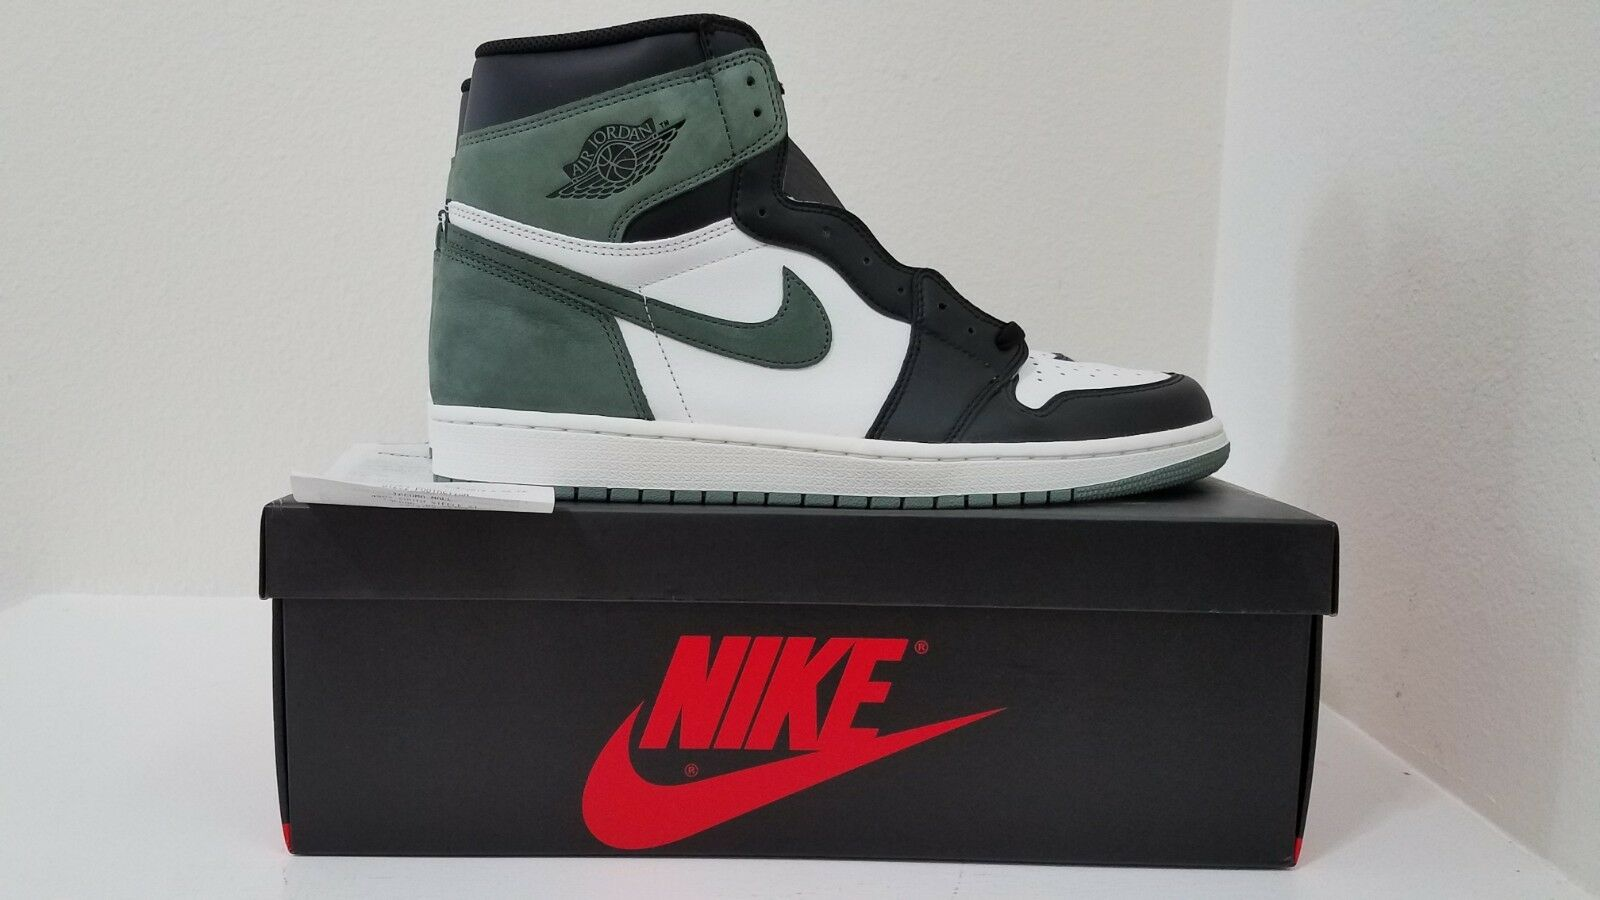 c3b3f64818 Air Jordan 1 High Clay Green 555088 135 DS w receipt Size 13 OG Retro  nompcf1504-Athletic Shoes